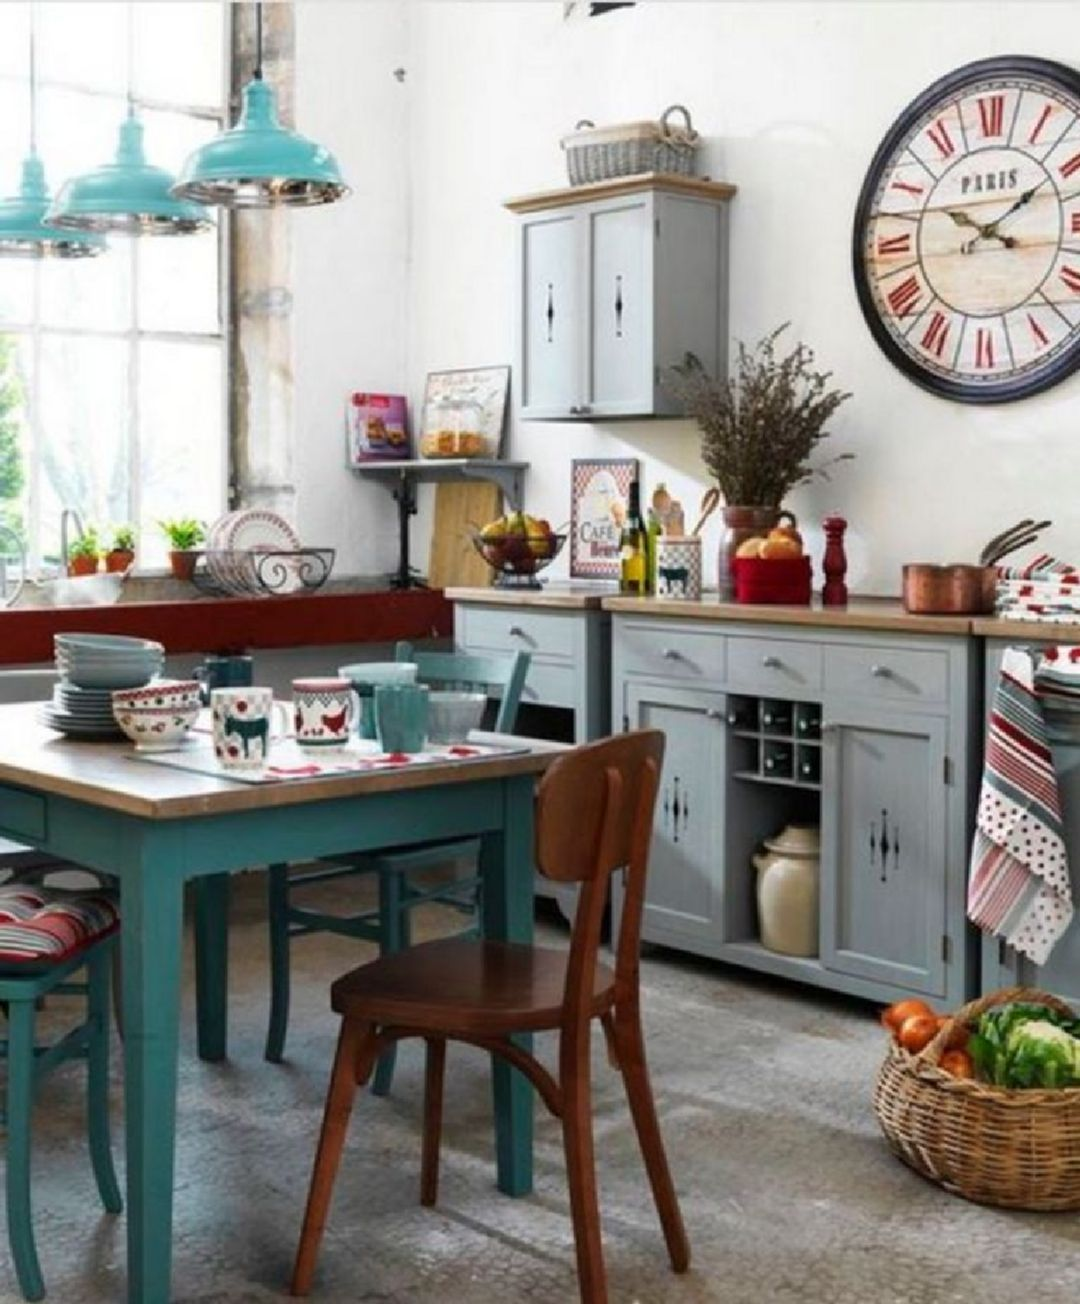 12 beautiful vintage design ideas that are suitable for your home boho kitchen decor kitchen on boho chic home decor kitchen id=75613